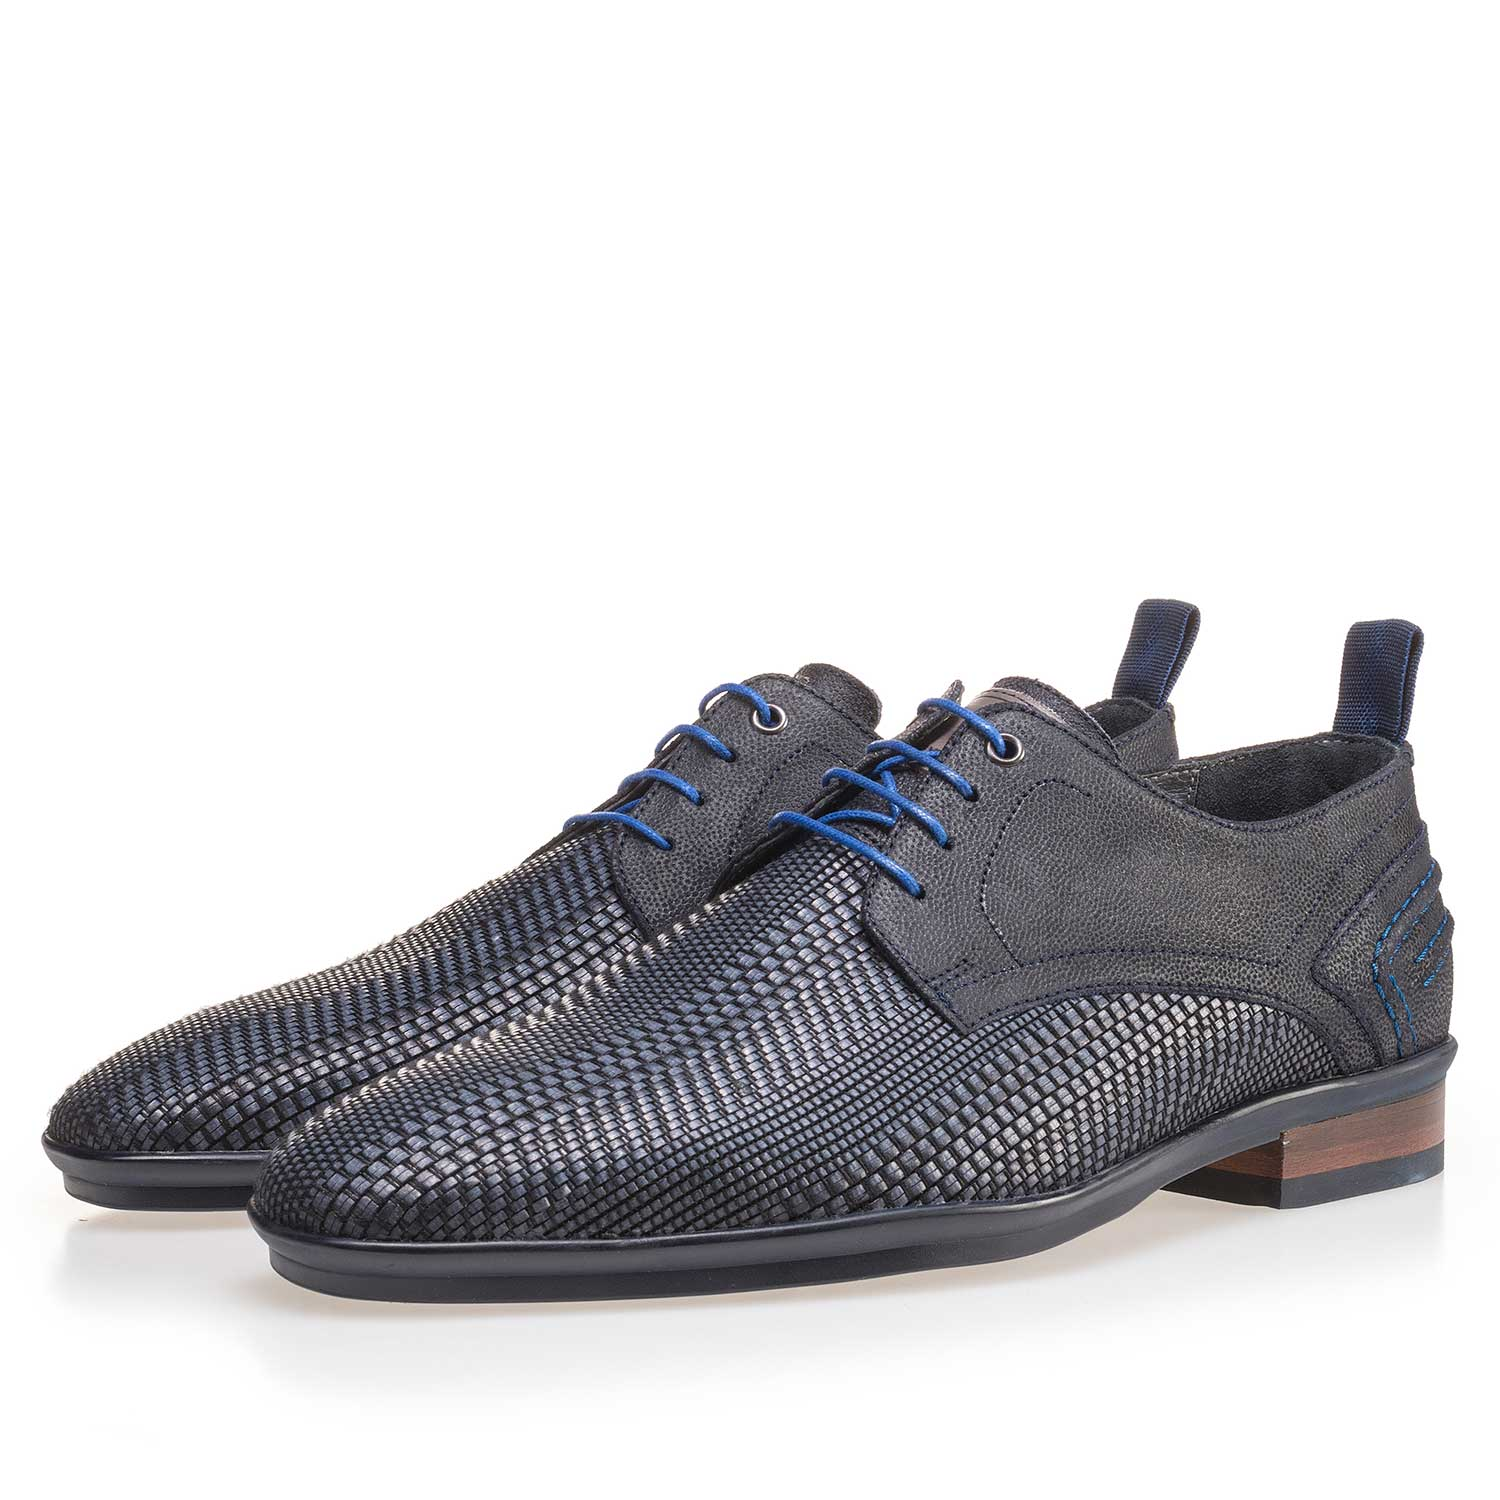 14067/01 - Blue lace shoe made of braided leather